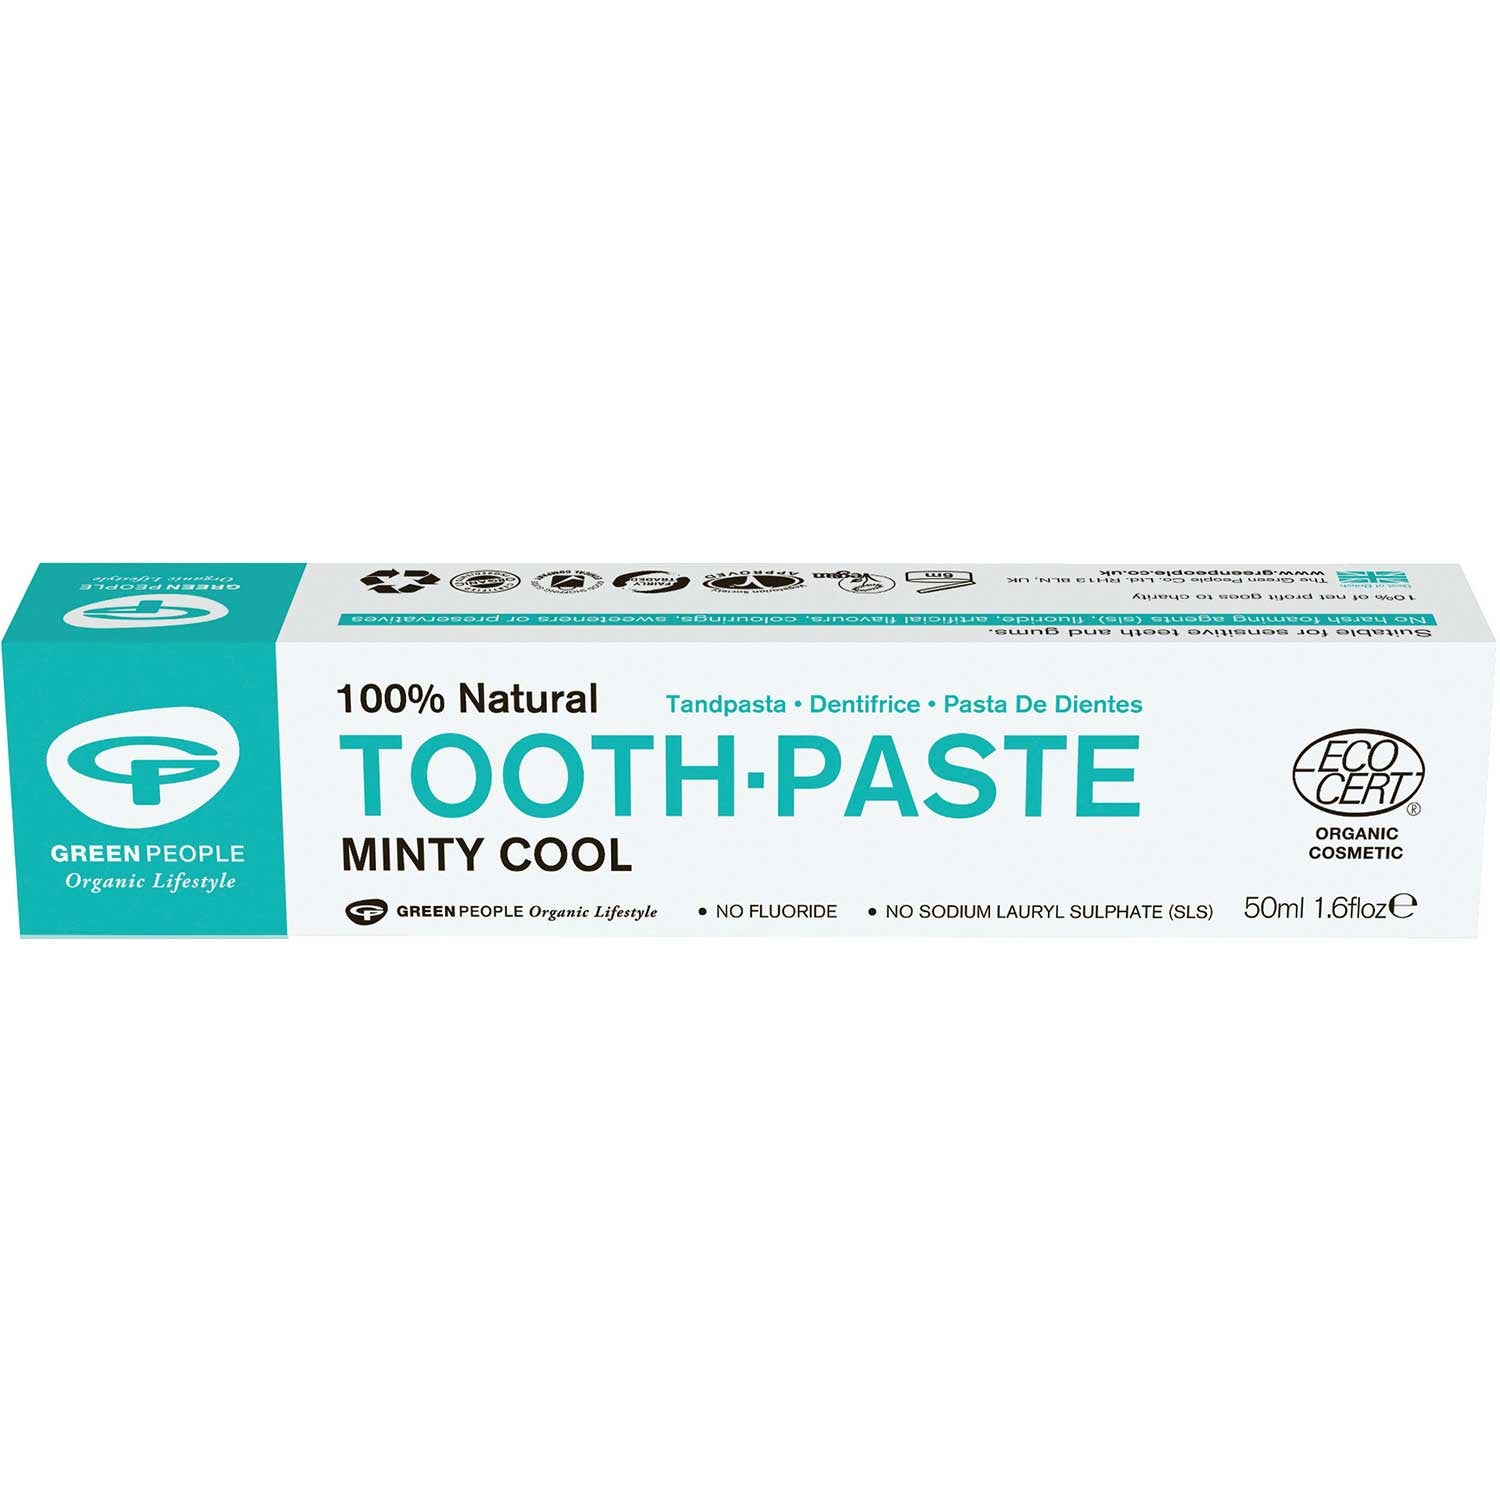 Green People Organic Minty Cool Toothpaste, 50 ml.-NaturesWisdom